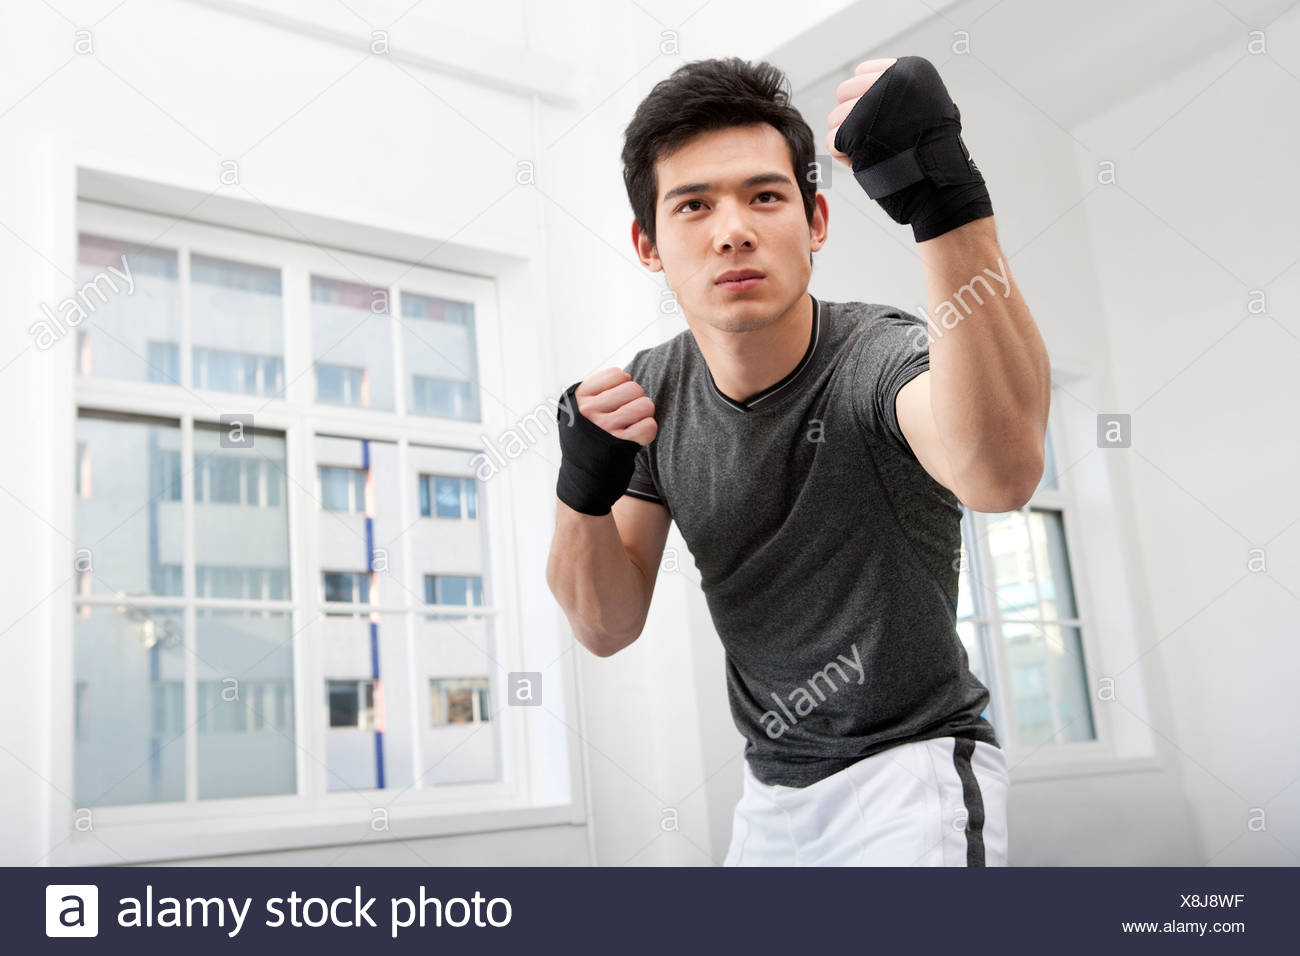 Serious Man in Fighting Stance - Stock Image